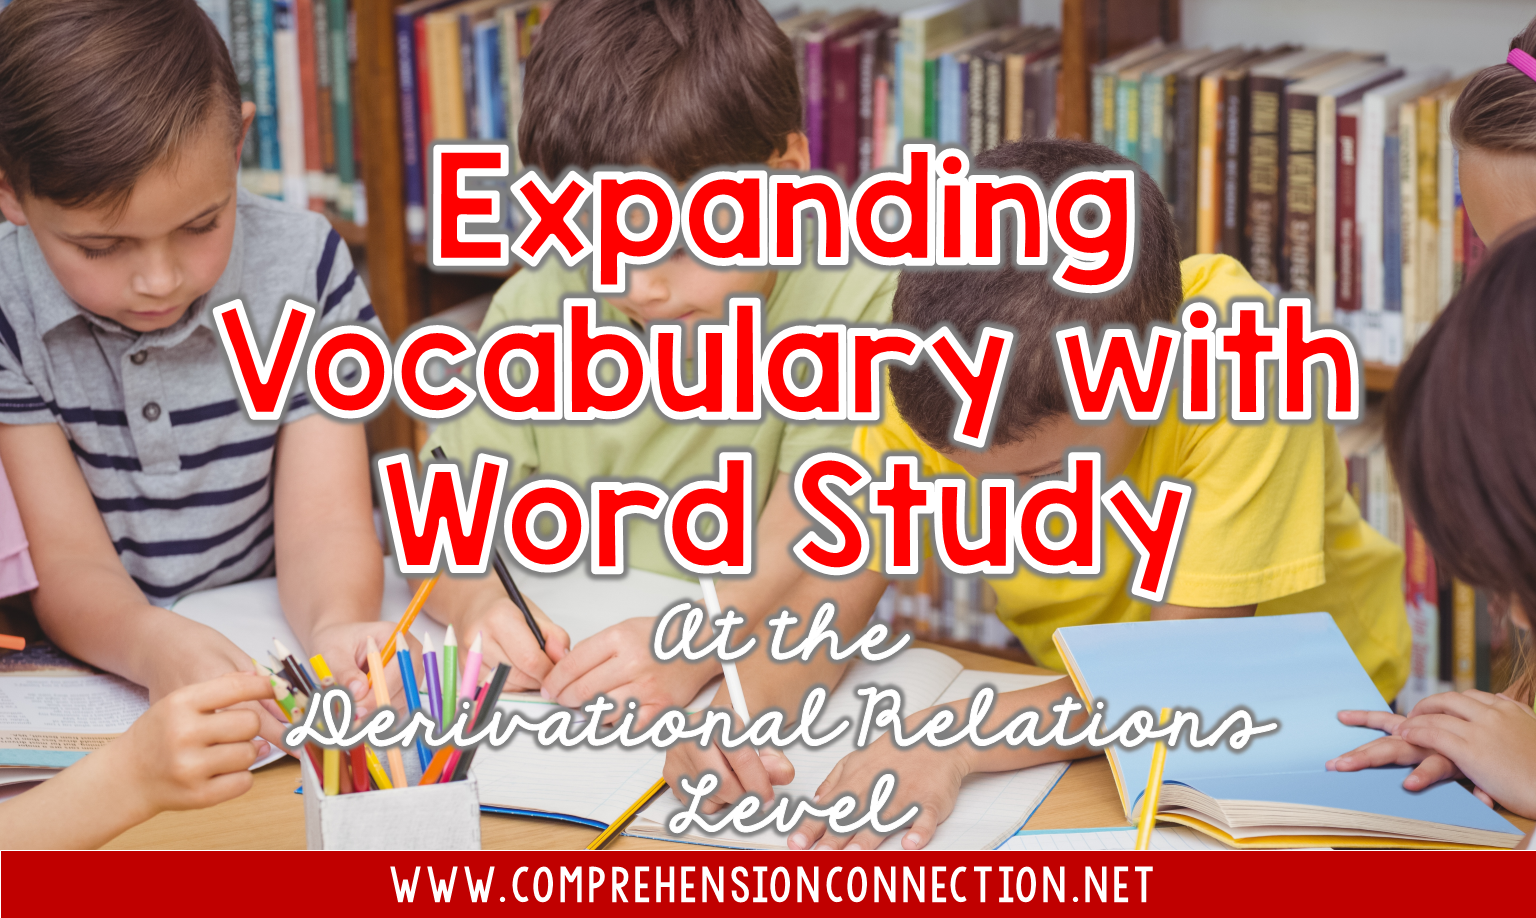 Are you an upper elementary or middle school teacher? This post explains what word study looks like for students at your level. It explains the Derivational Relations stage and how it works. Check it out!